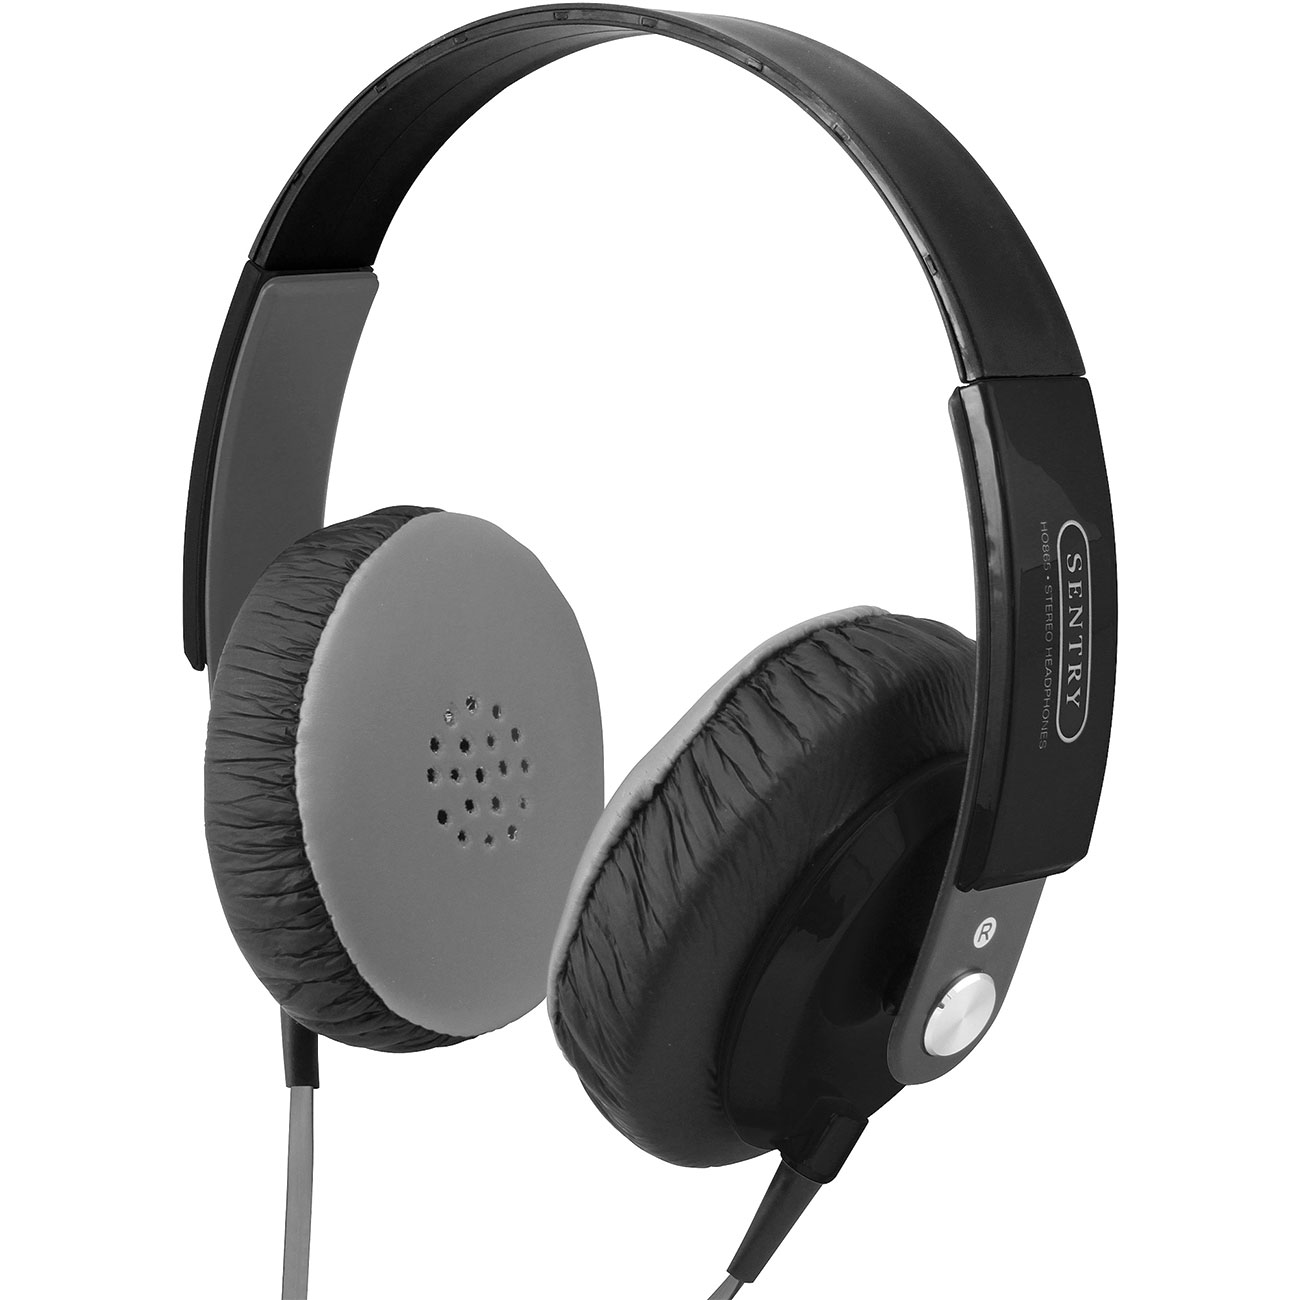 Digital Stereo Headphones w/ Dual Volume Controls Price: $13.95